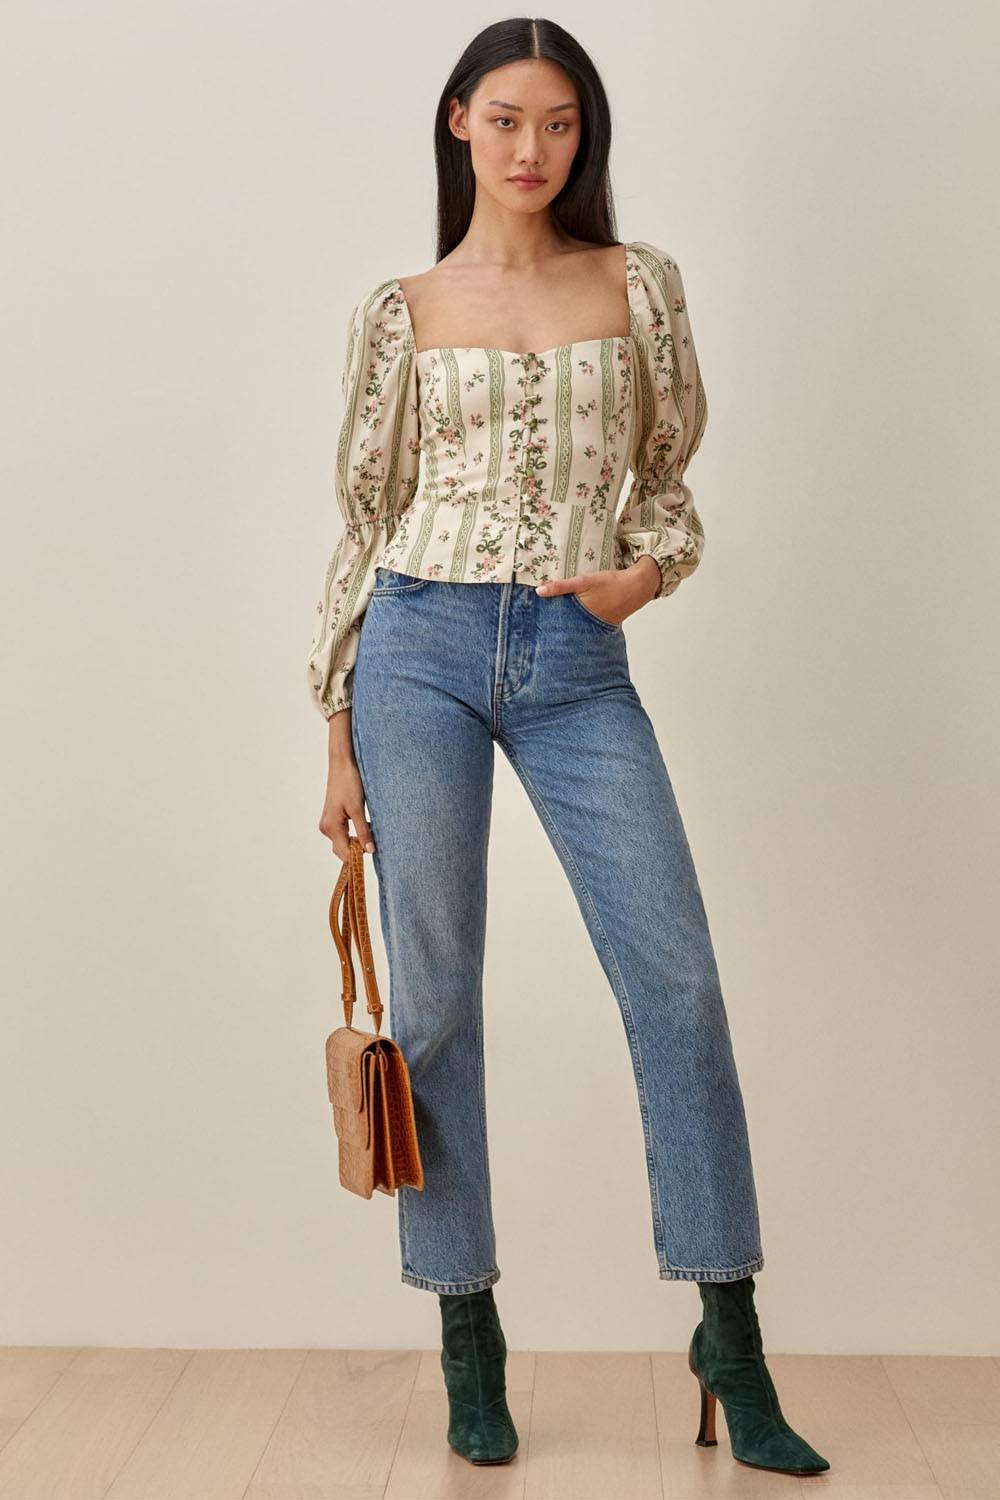 reformation cheap cute jeans outfits